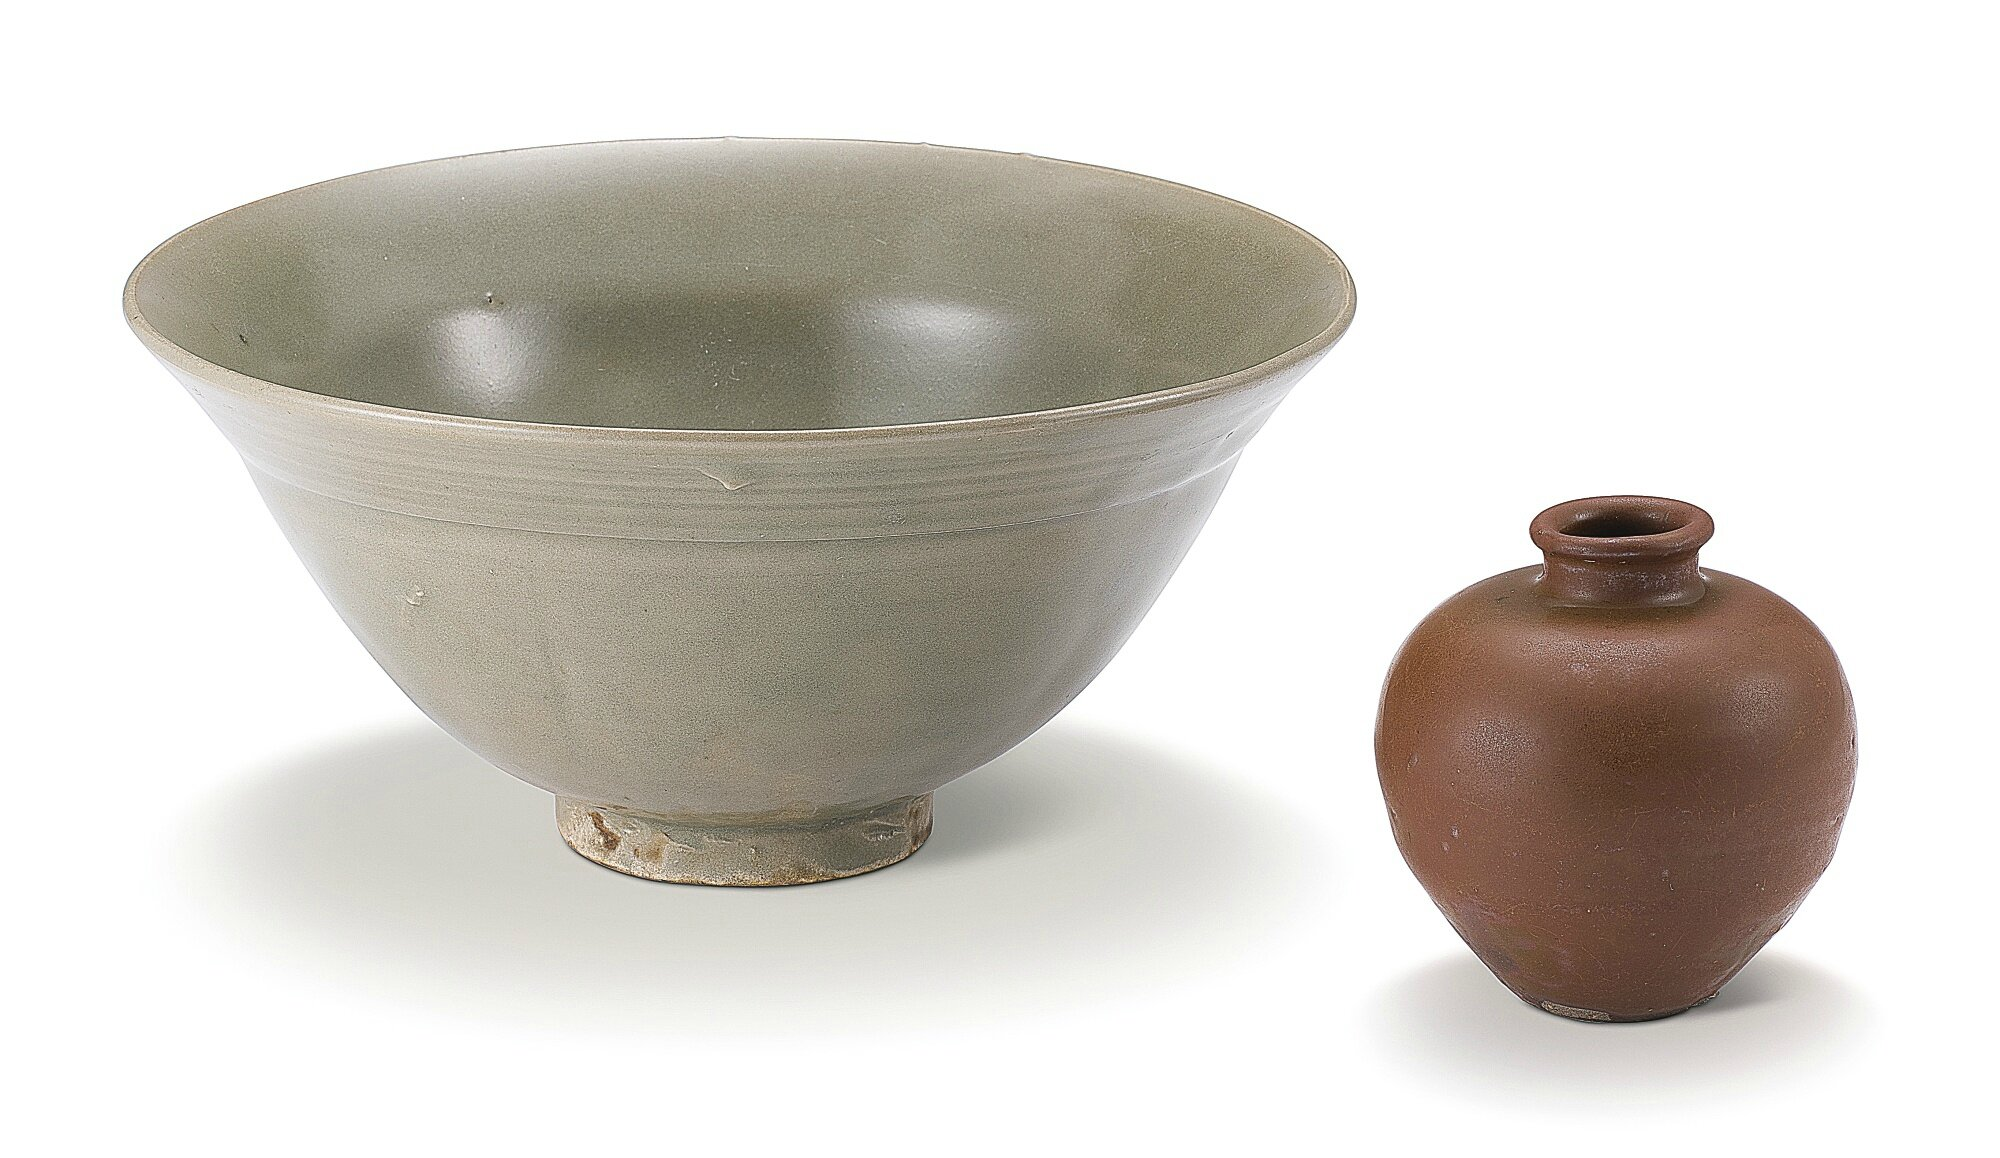 A celadon-glazed bowl and a 'Yaozhou' persimmon-glazed jar, Song Dynasty